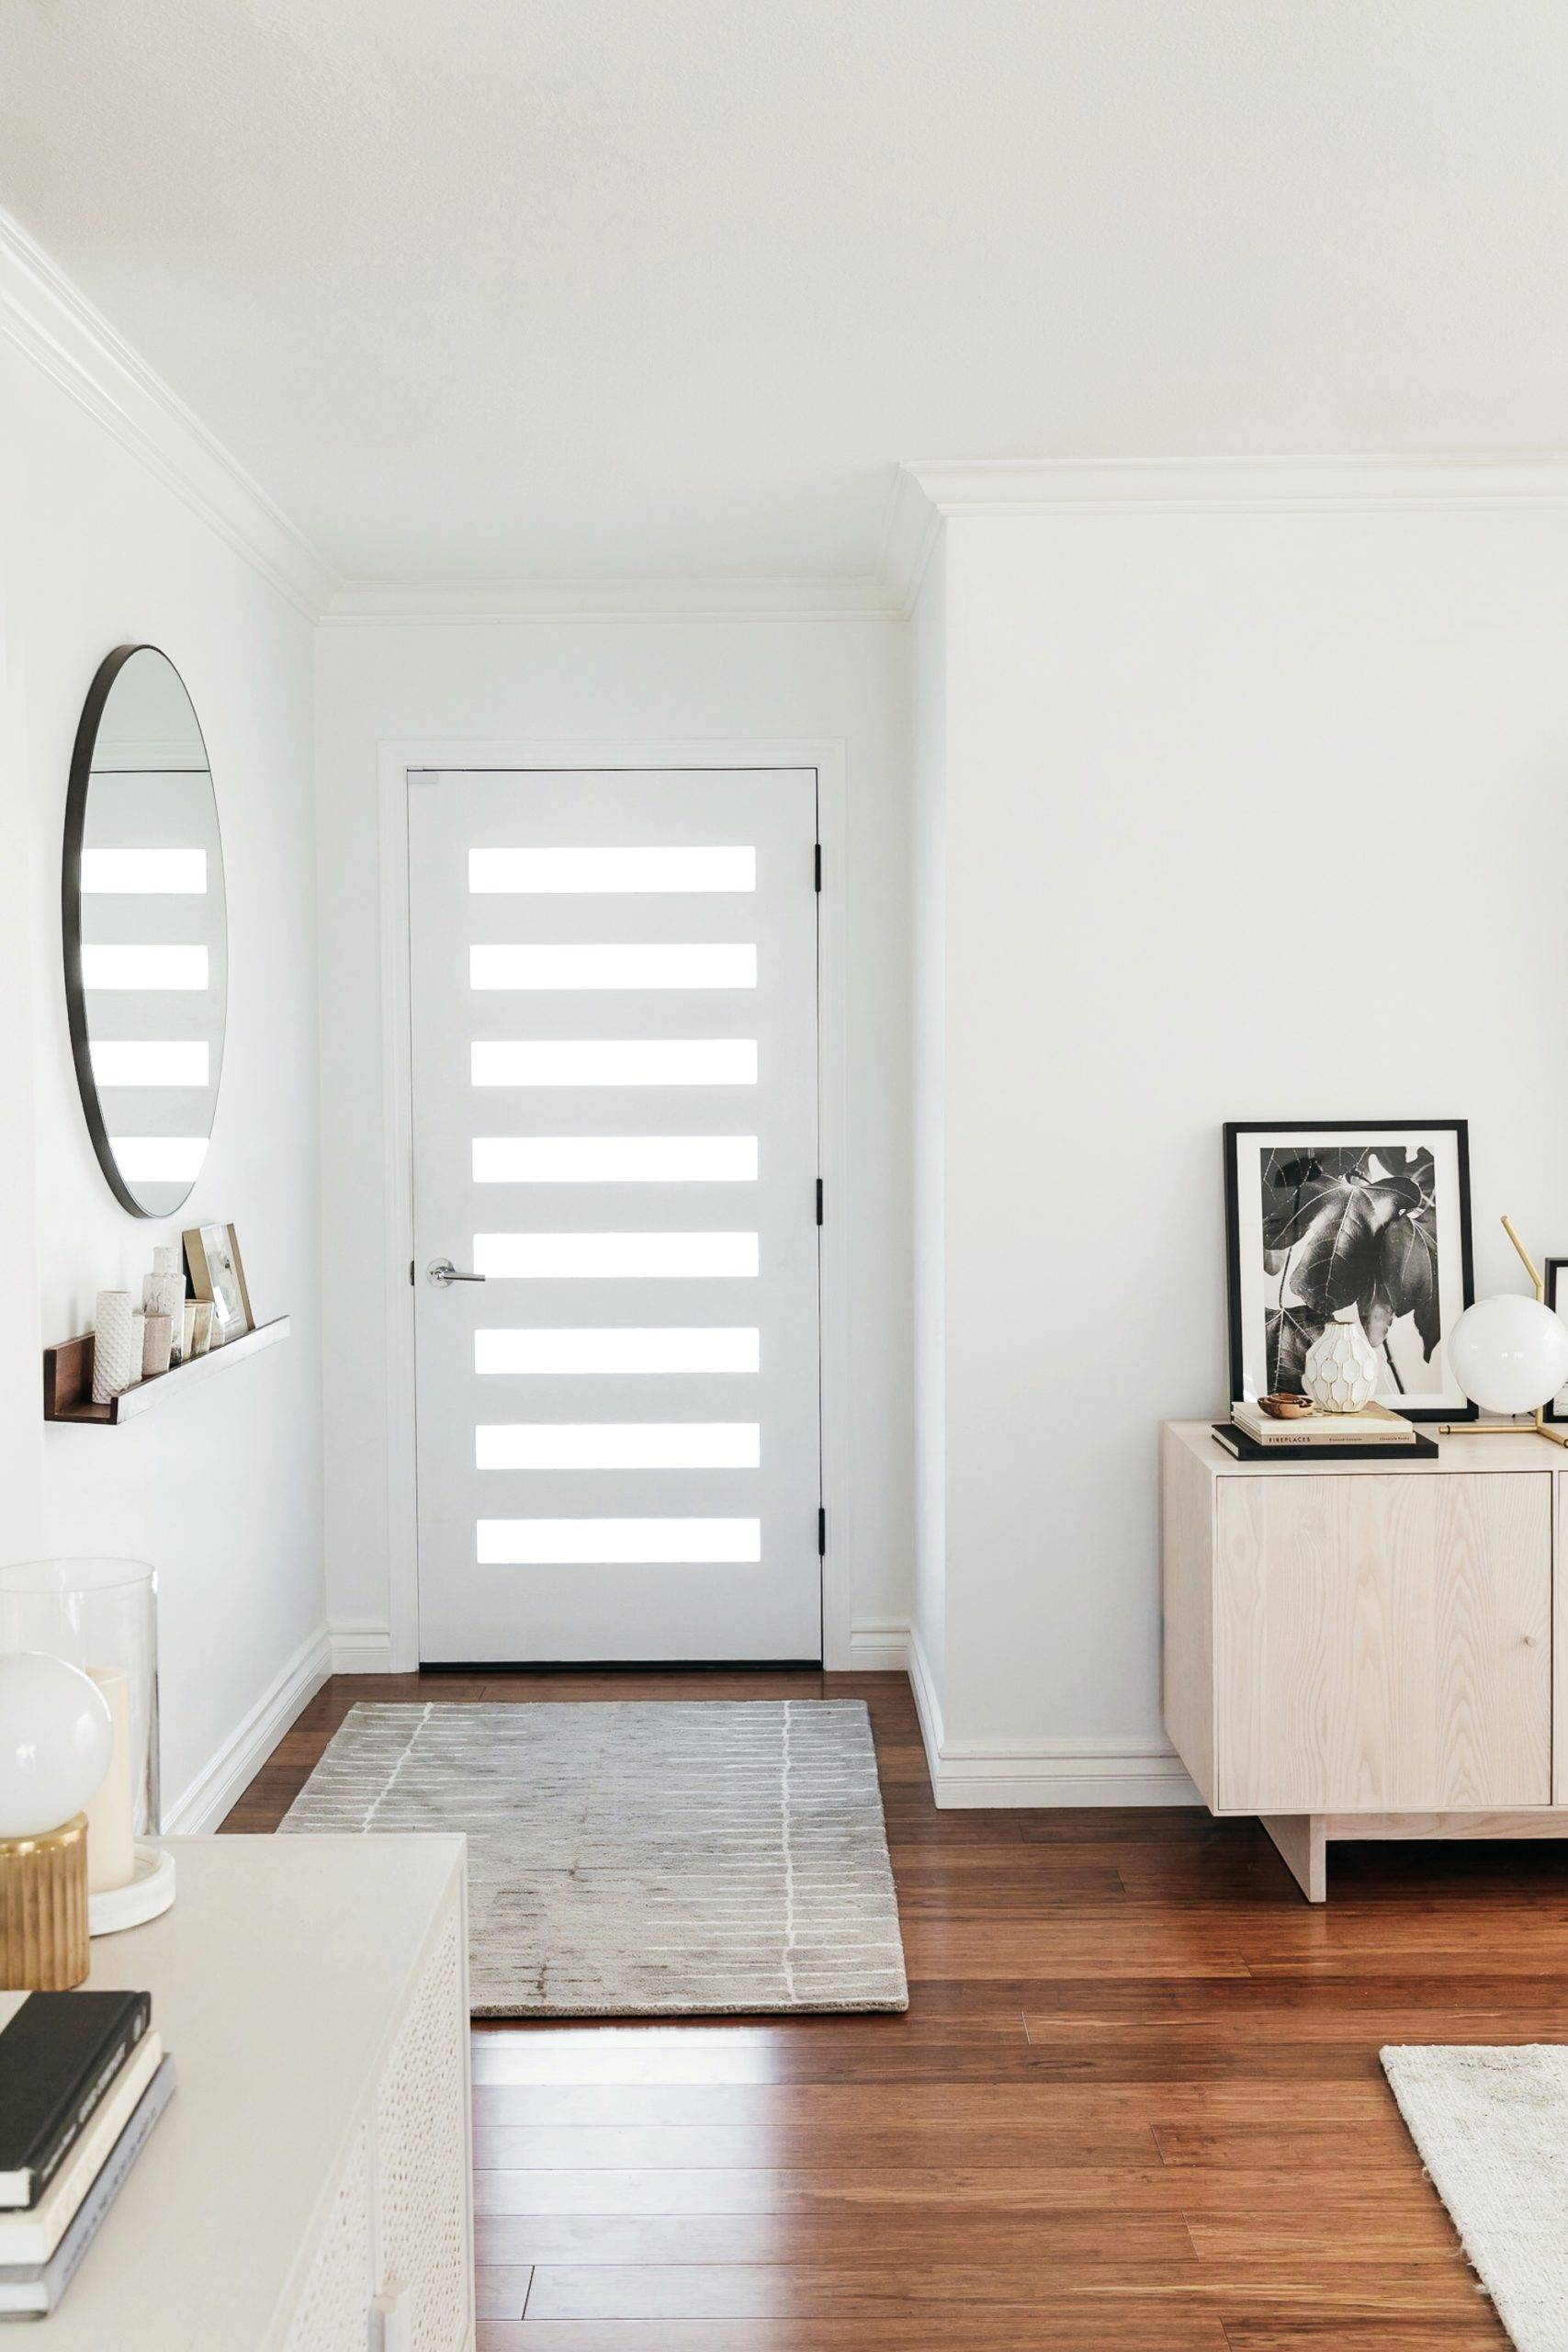 Round mirror hanging on wall beside white front door